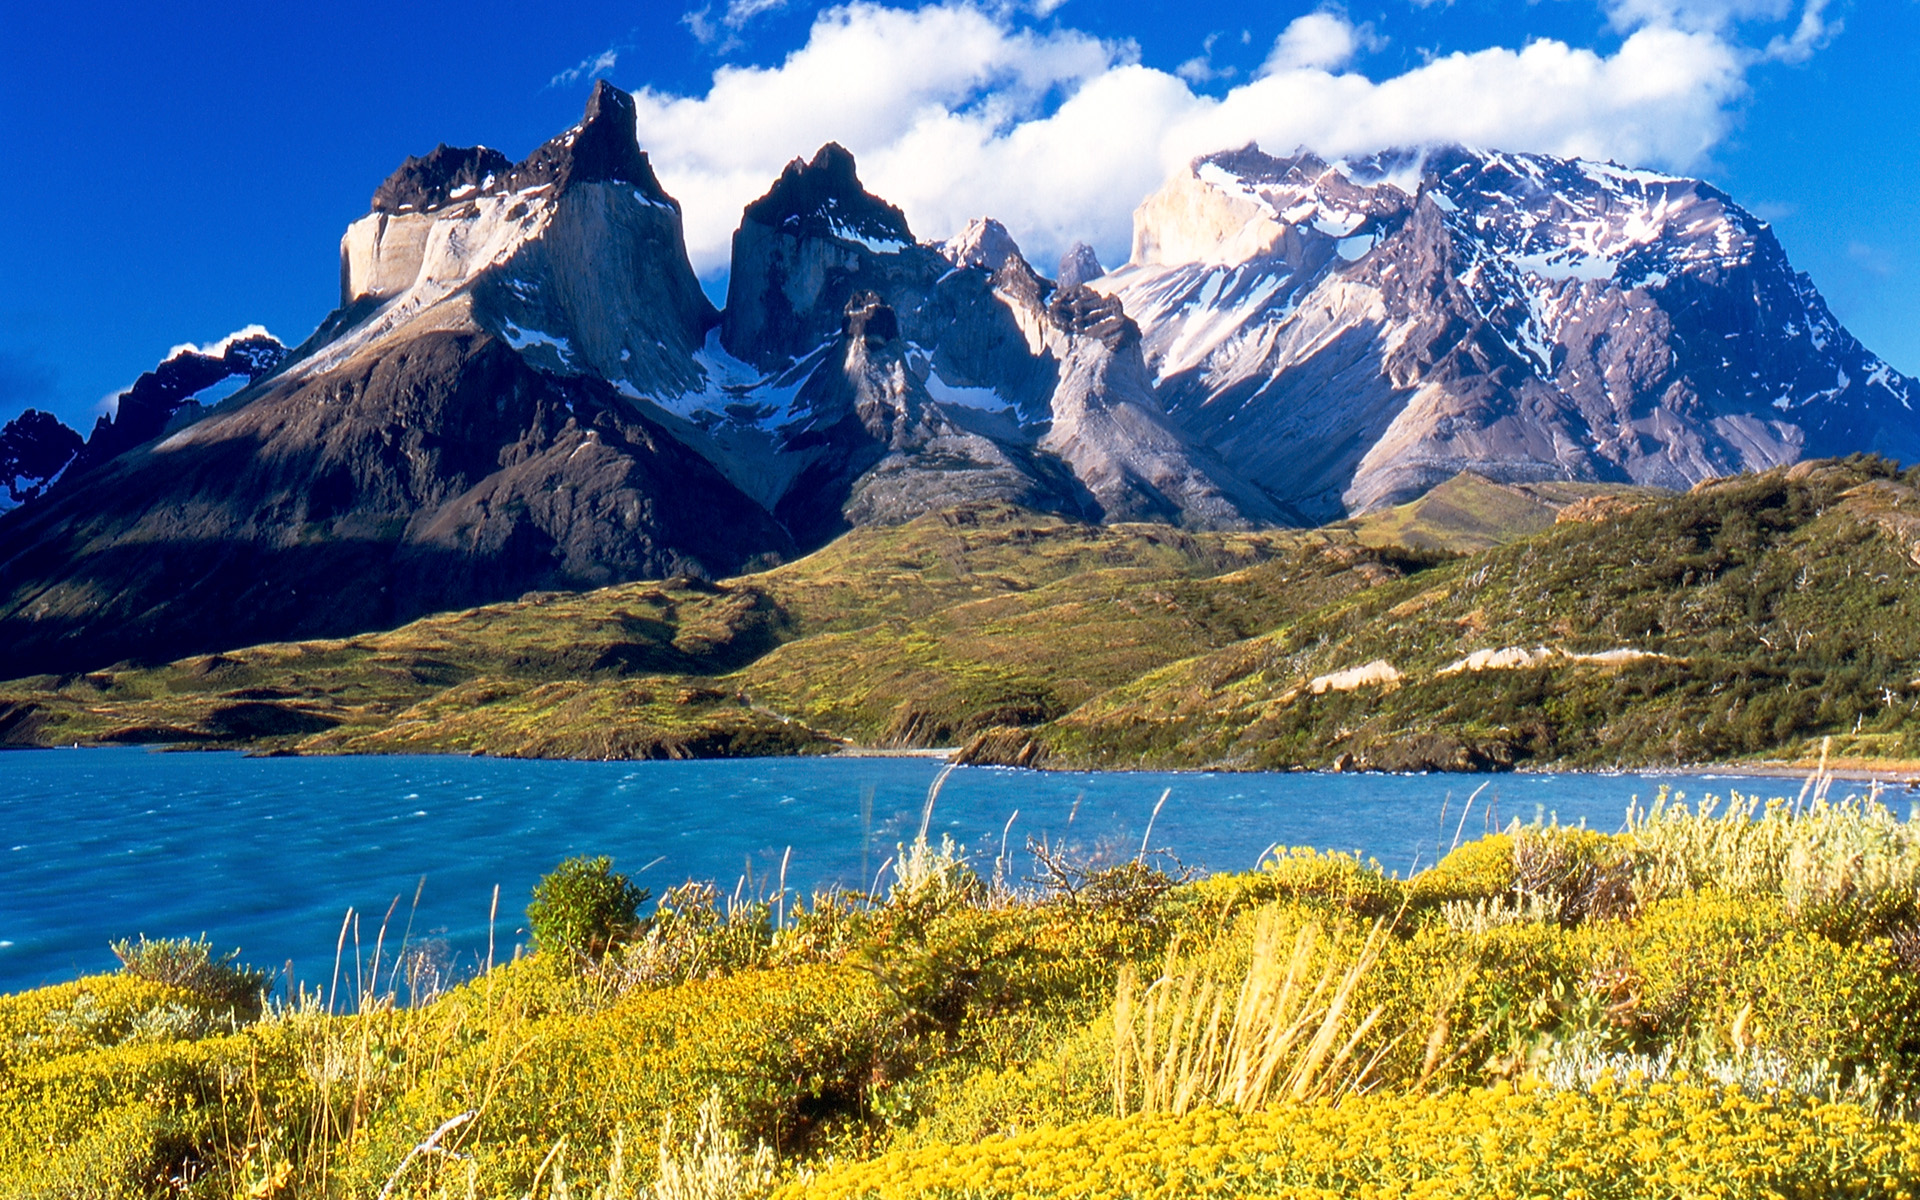 HUFFPOST –Chile Establishes 10 Million Acres Of National Parks in 'Gigantic' Move For Conservation